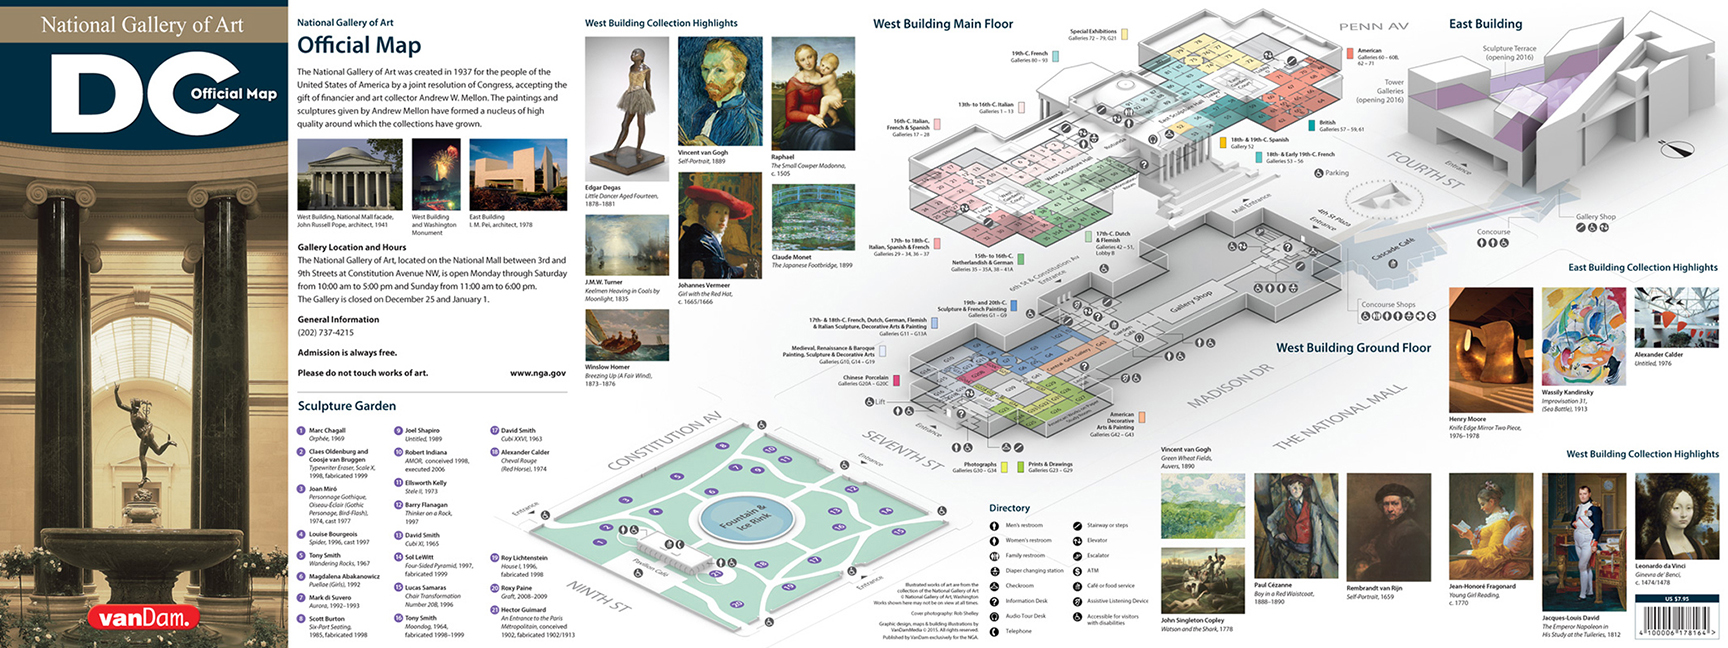 National Gallery of Art Illustrated Model